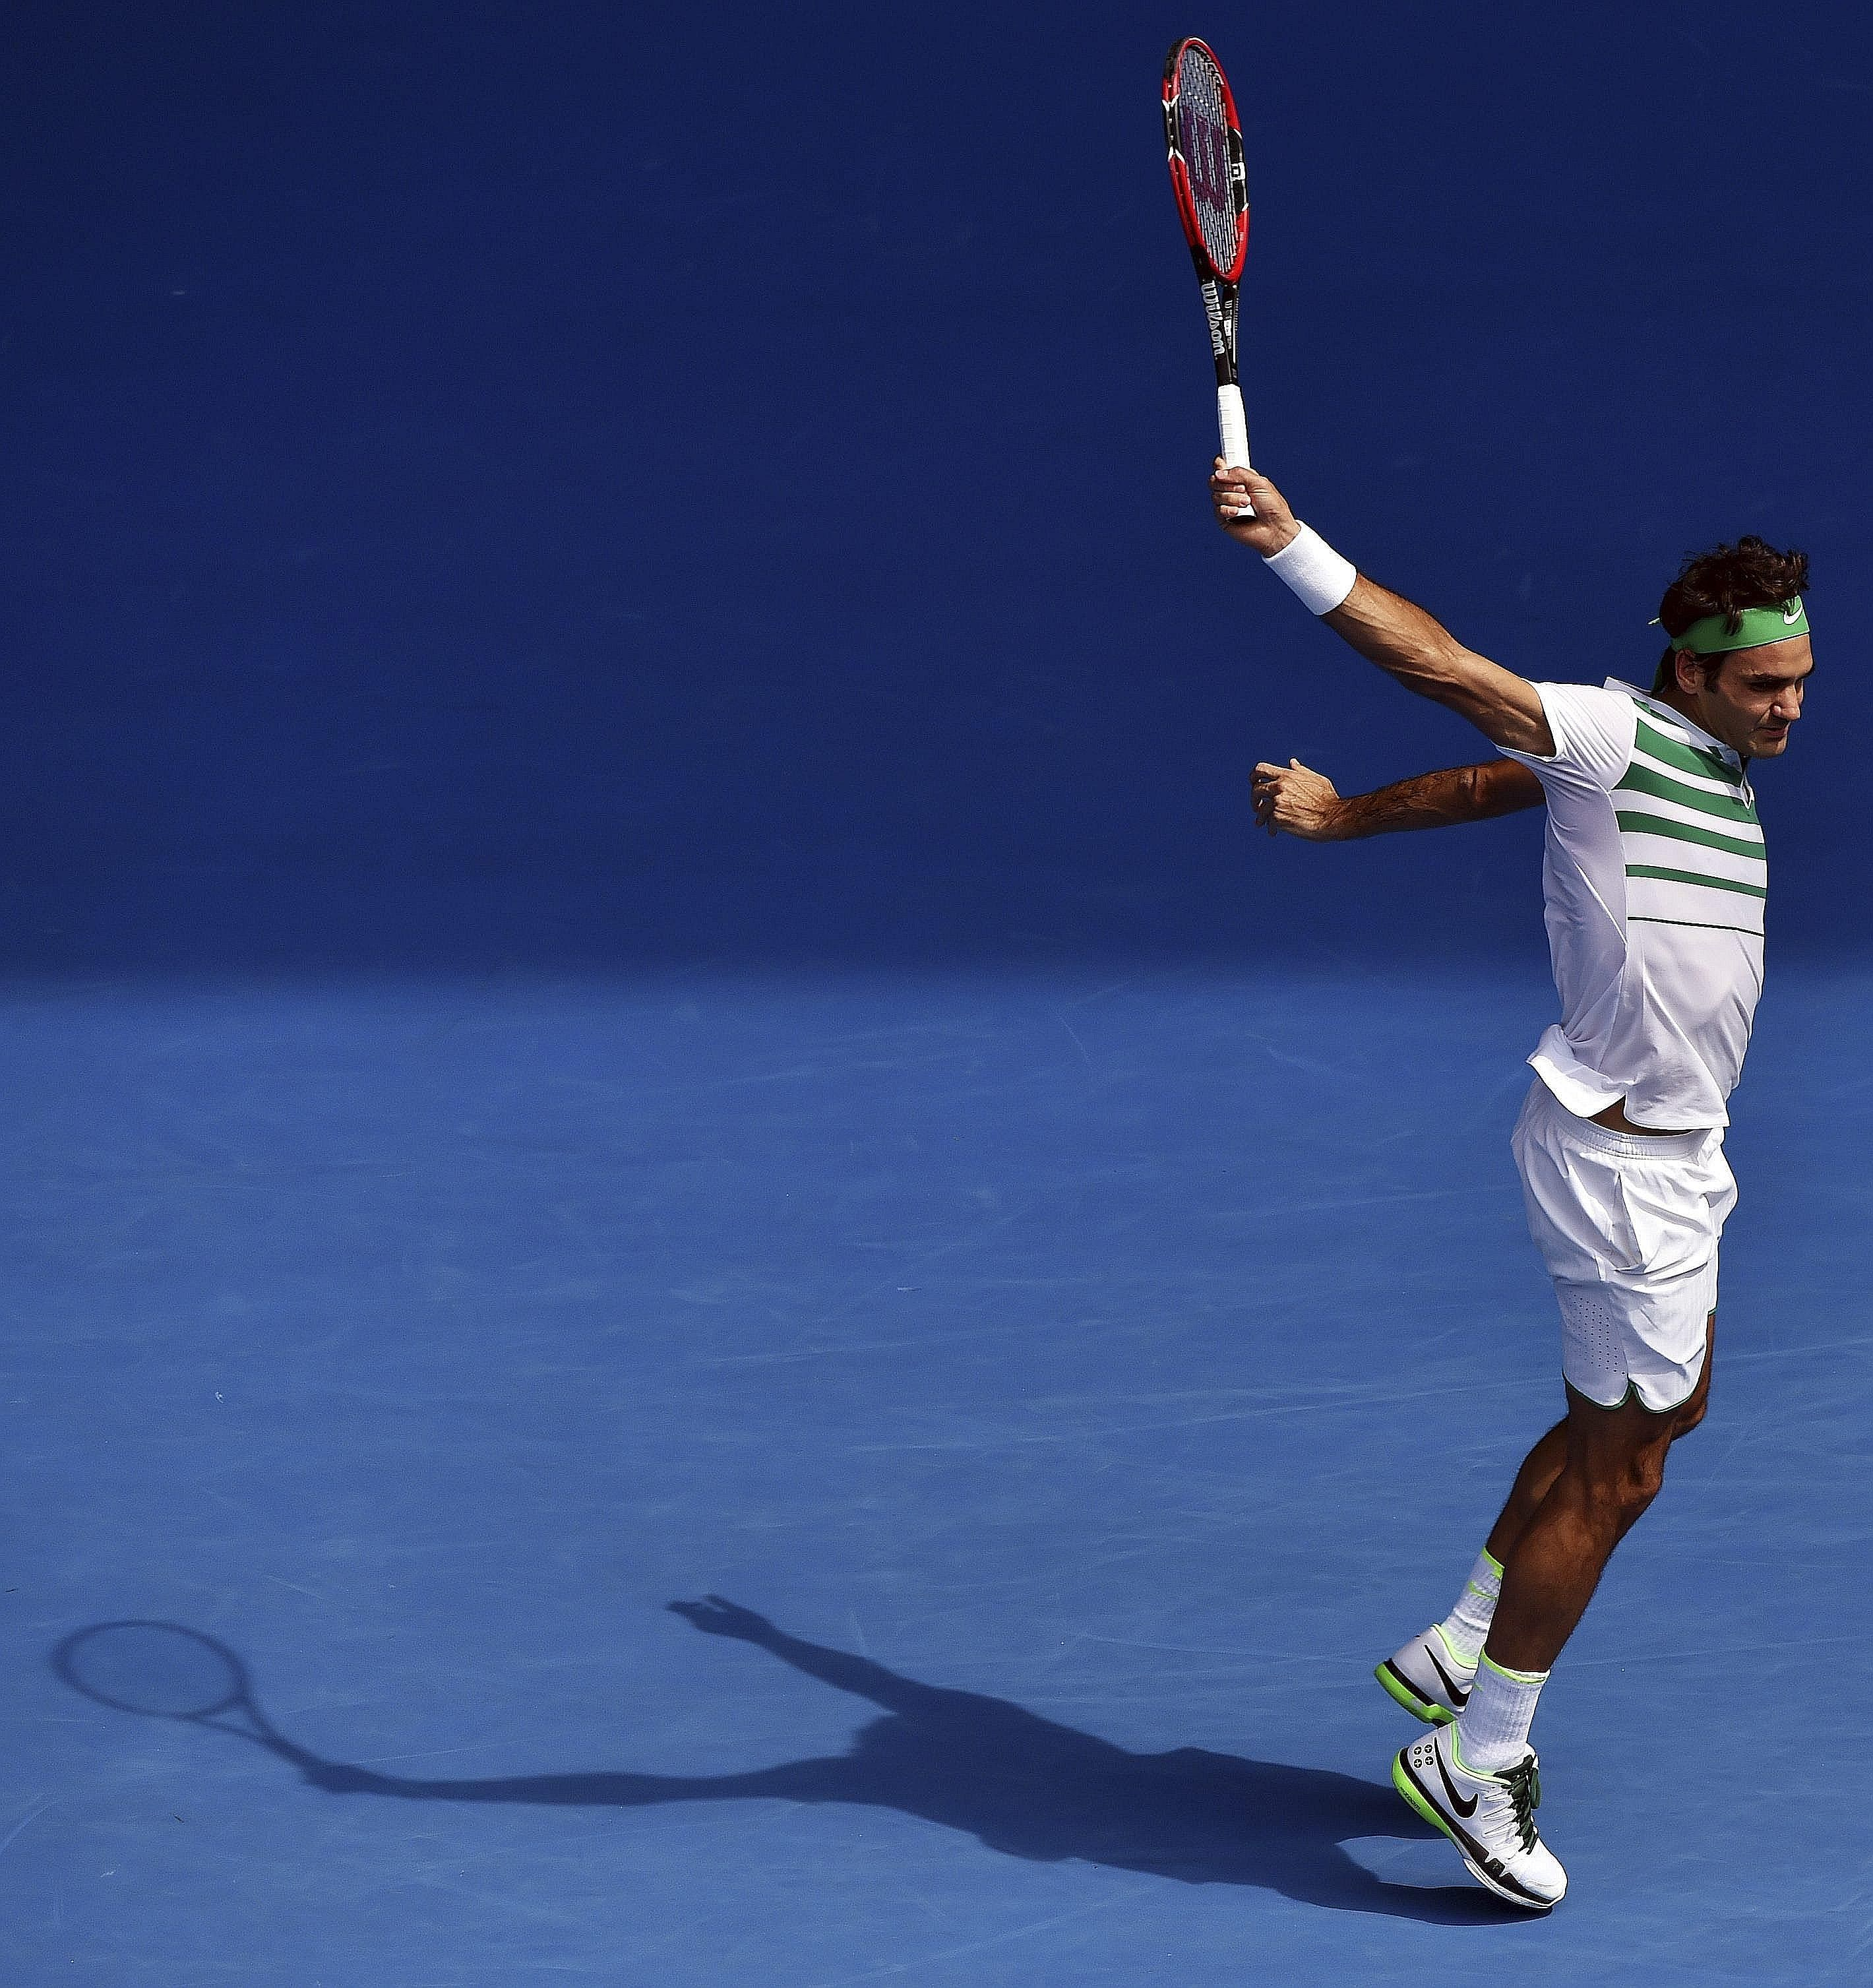 Roger Federer combines poise, balance and grace in his follow-through to a backhand in his Australian Open quarter-final against Tomas Berdych of the Czech Republic at the Australian Open yesterday. Federer dropped his opening service game but won 7-